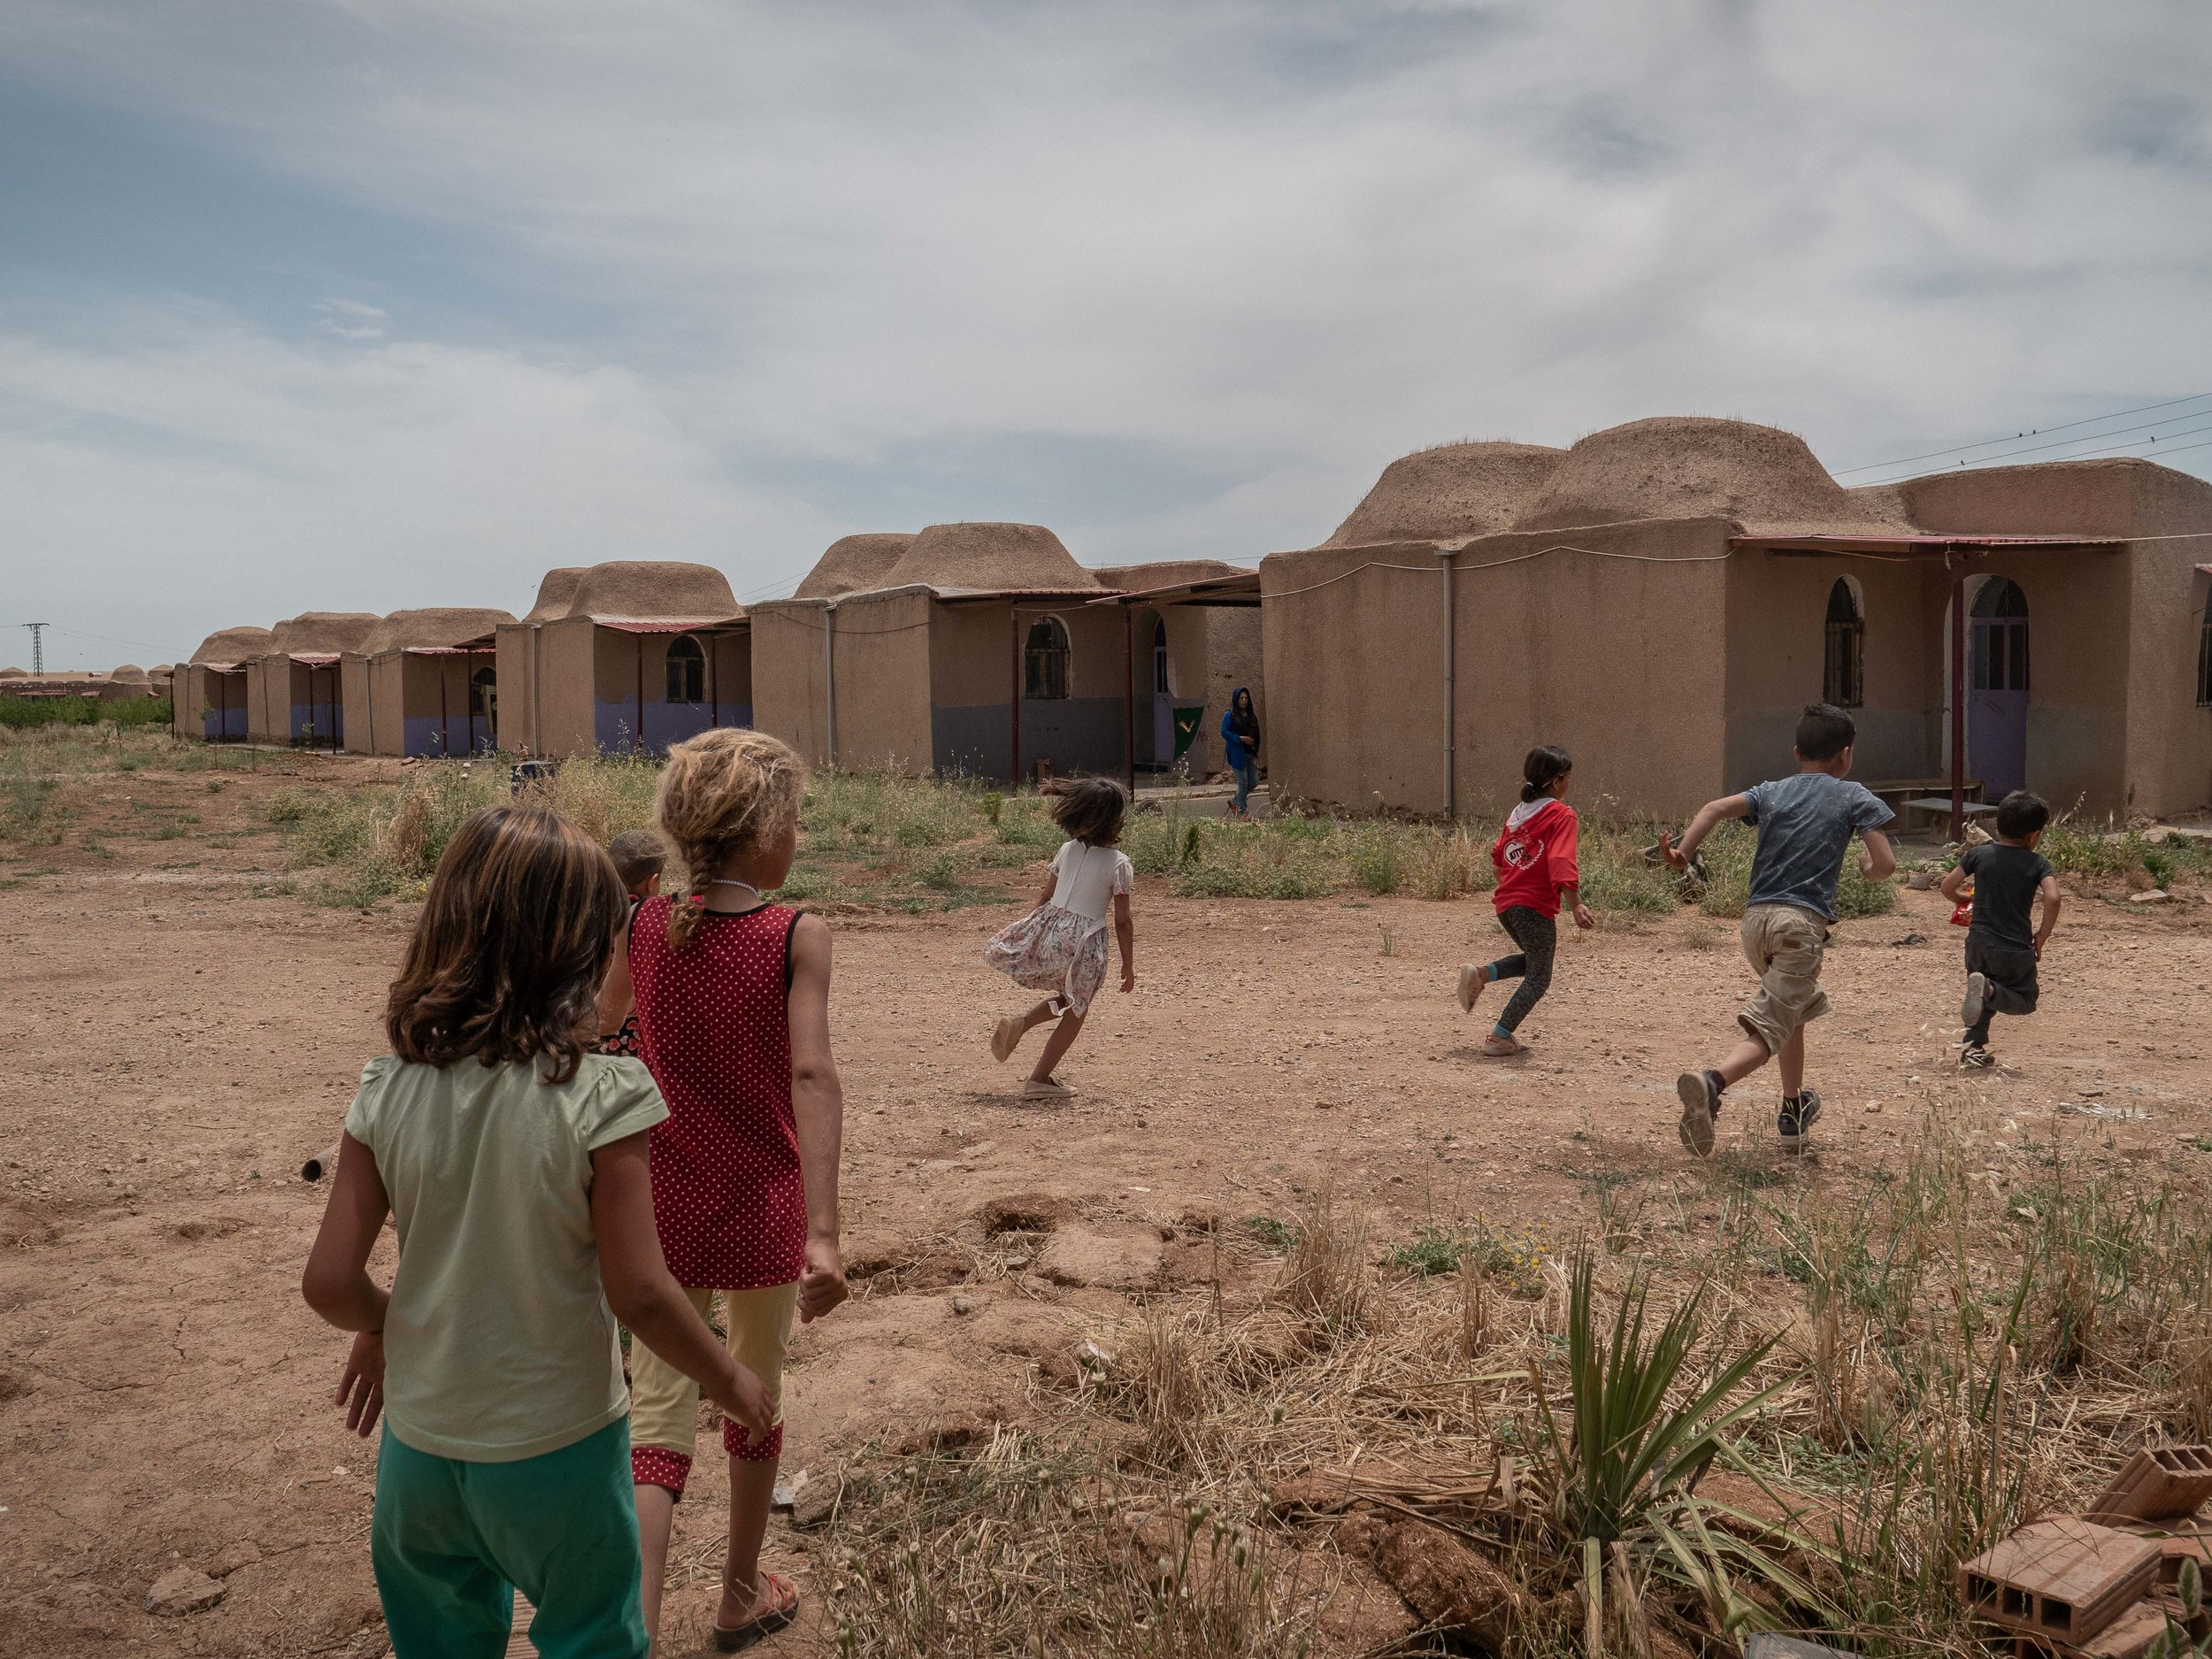 31/05/19, Jinwar, Syria - Children run in front of some traditional houses in the women village of Jinwar.